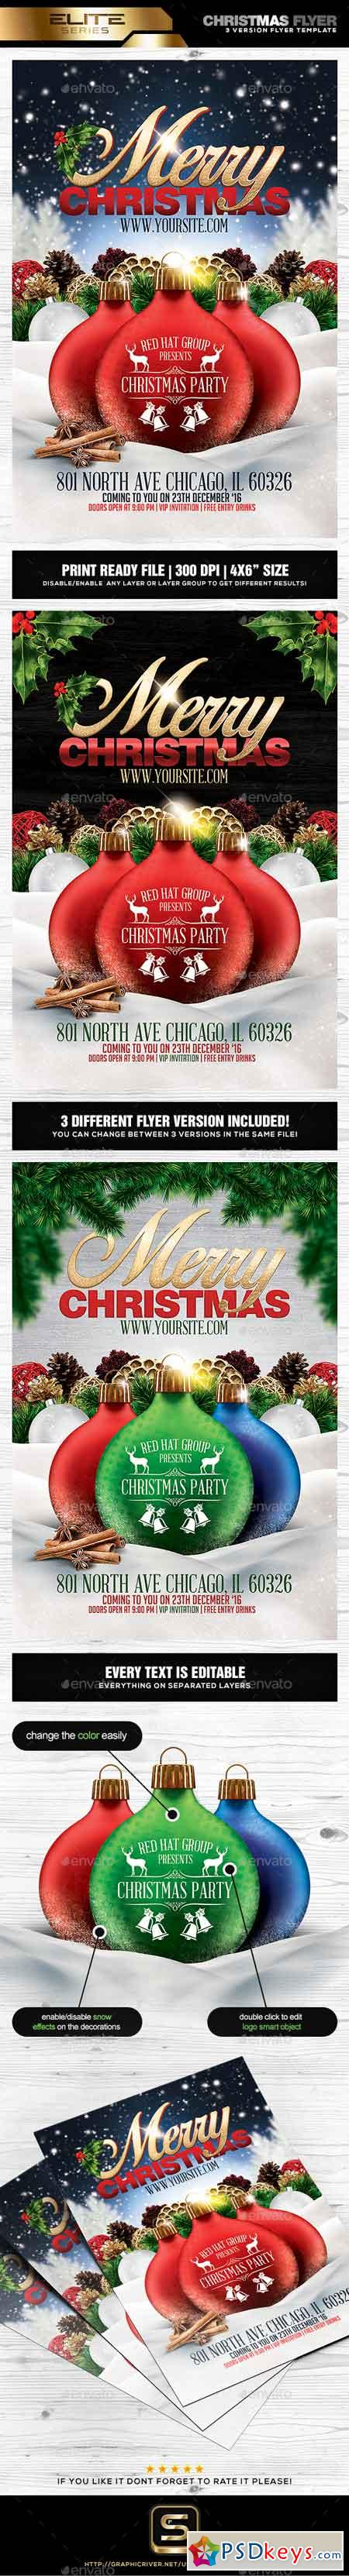 Christmas Party Flyer Template 18898331